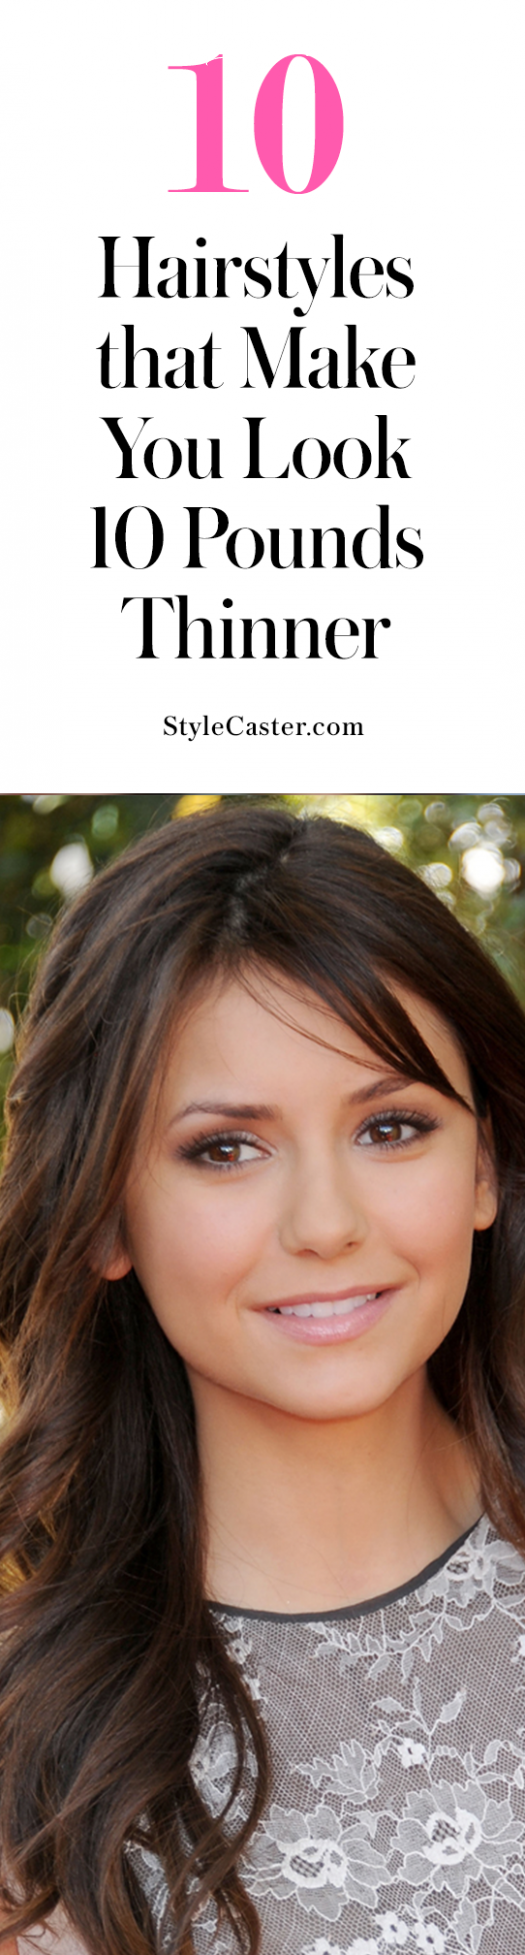 8 hairstyles that make you look 8 pounds thinner | stylecaster hairstyle for round face to look slim